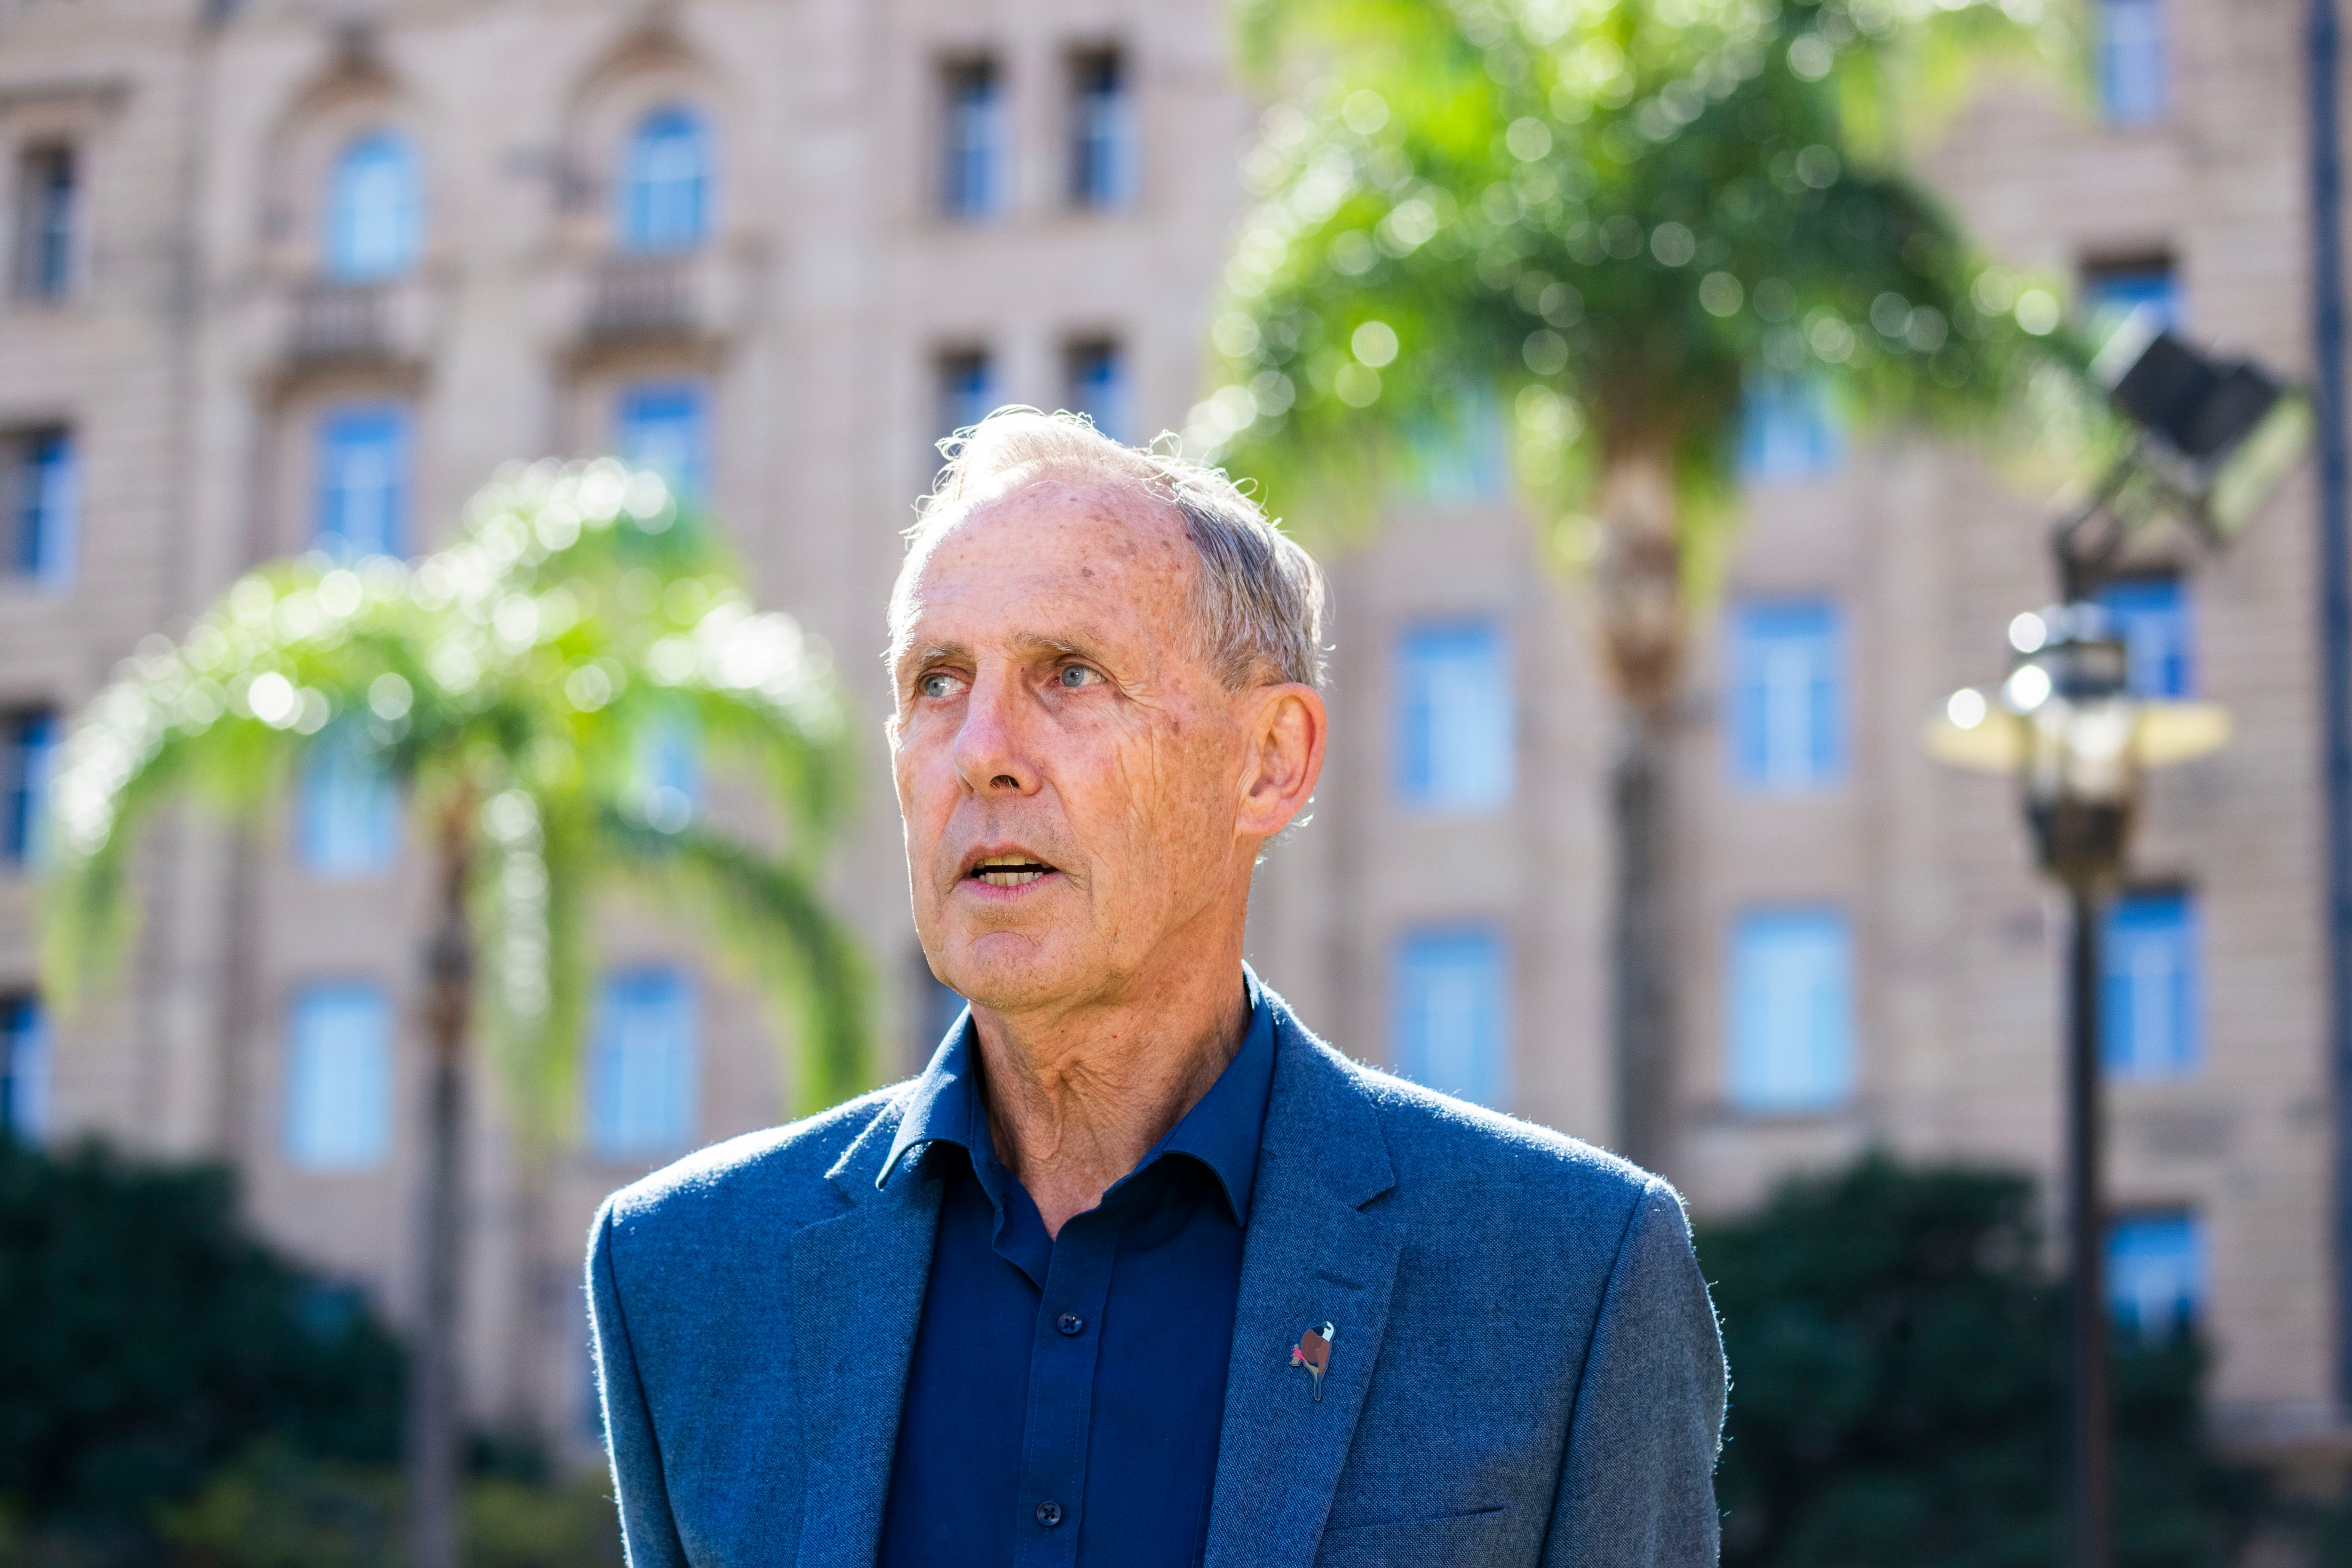 Former Greens leader Bob Brown says he supports renewable energy but everything has limits.